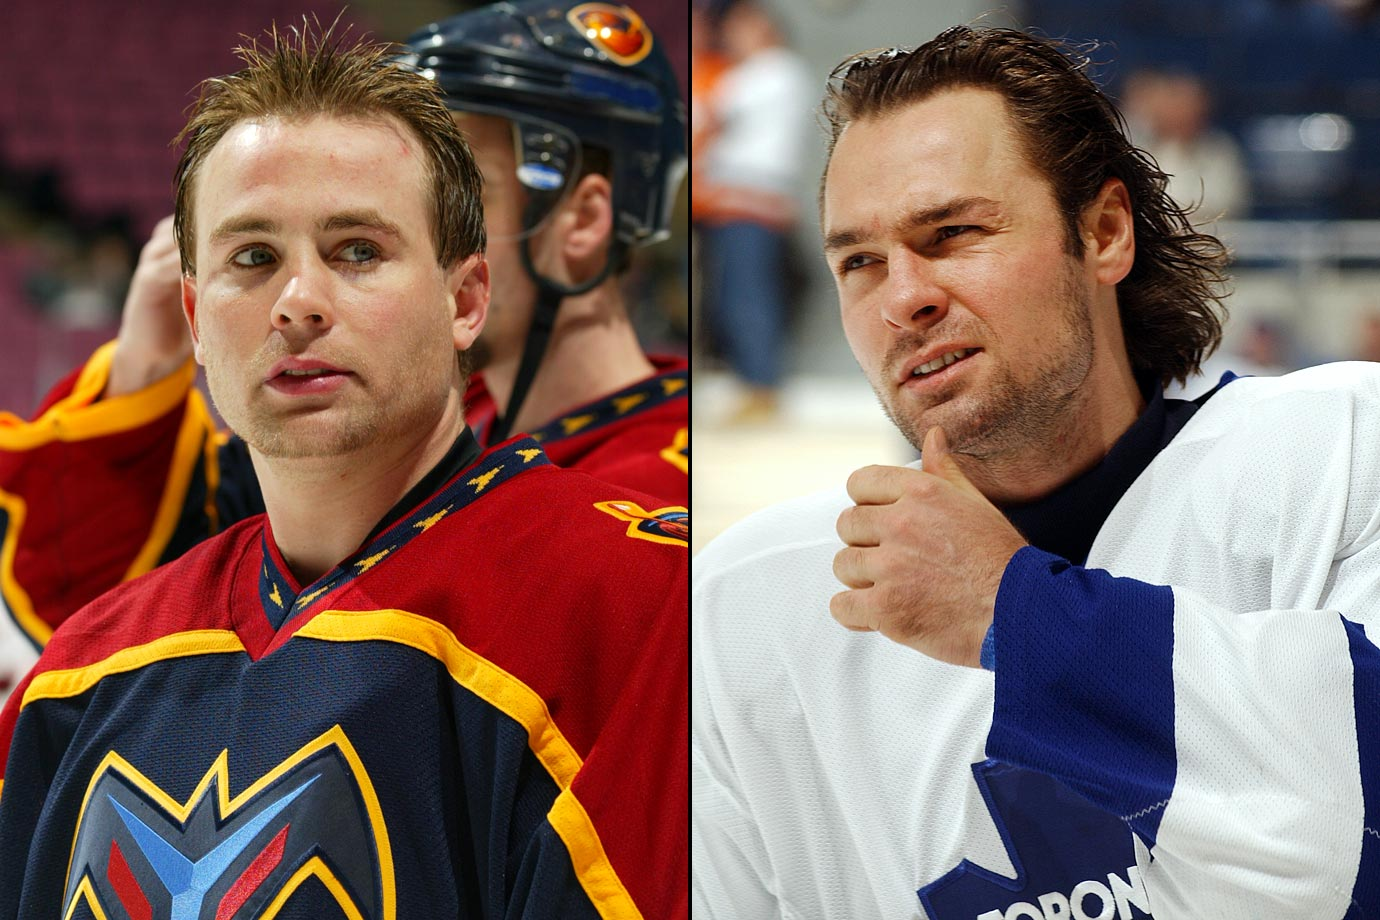 Few people, other than his teammates or family perhaps, liked Tucker, Toronto's notorious agitator. Savard got a taste during a Nov. 2003 scrum when Tucker stuck his finger in the Thrashers forward's mouth. Helping himself to a snack cost Savard a one-game suspension.